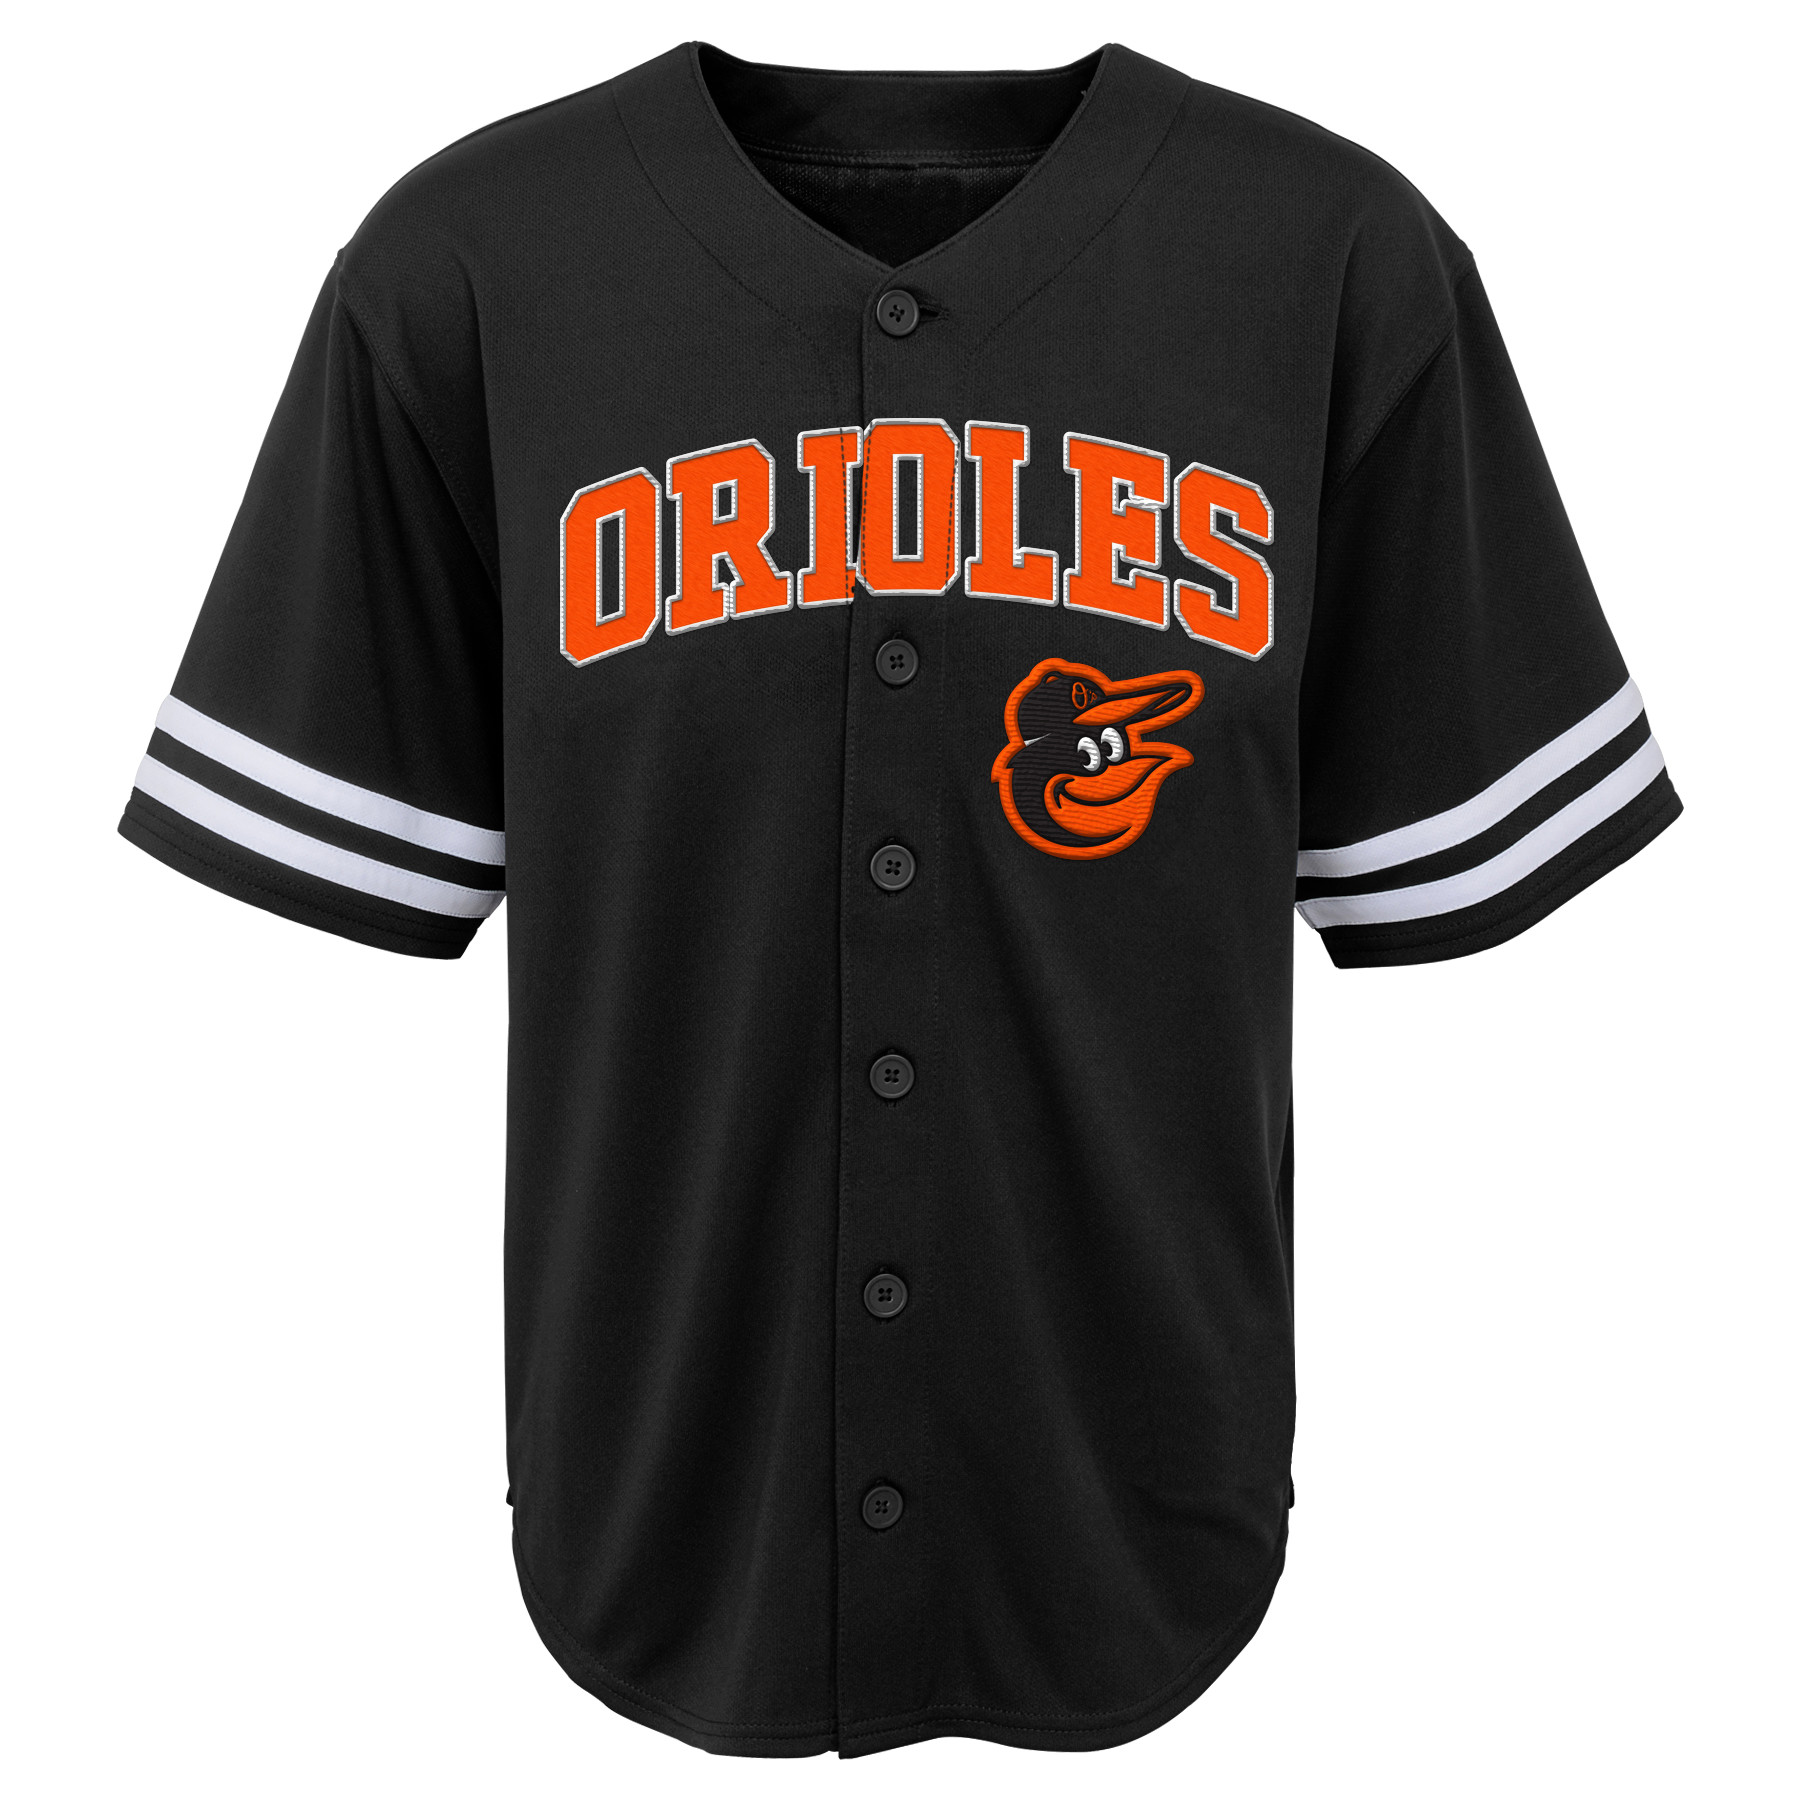 MLB Baltimore ORIOLES TEE Short Sleeve Boys Fashion Jersey Tee 60% Cotton 40% Polyester BLACK Team Tee 4-18